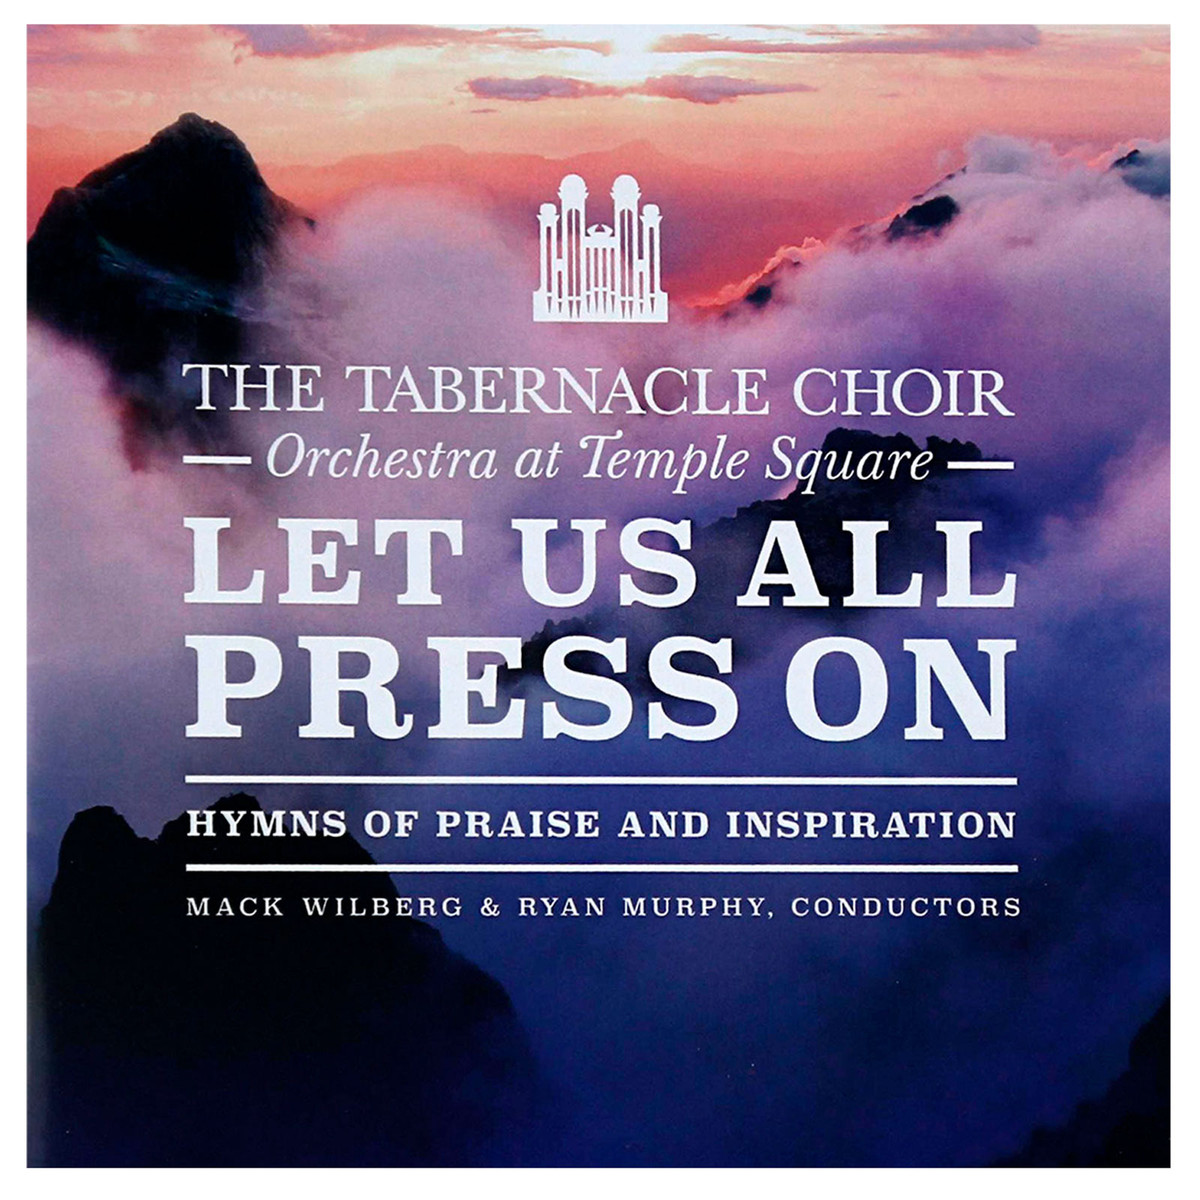 The Tabernacle Choir Orchestra at Temple Square: Let Us All Press On - CD